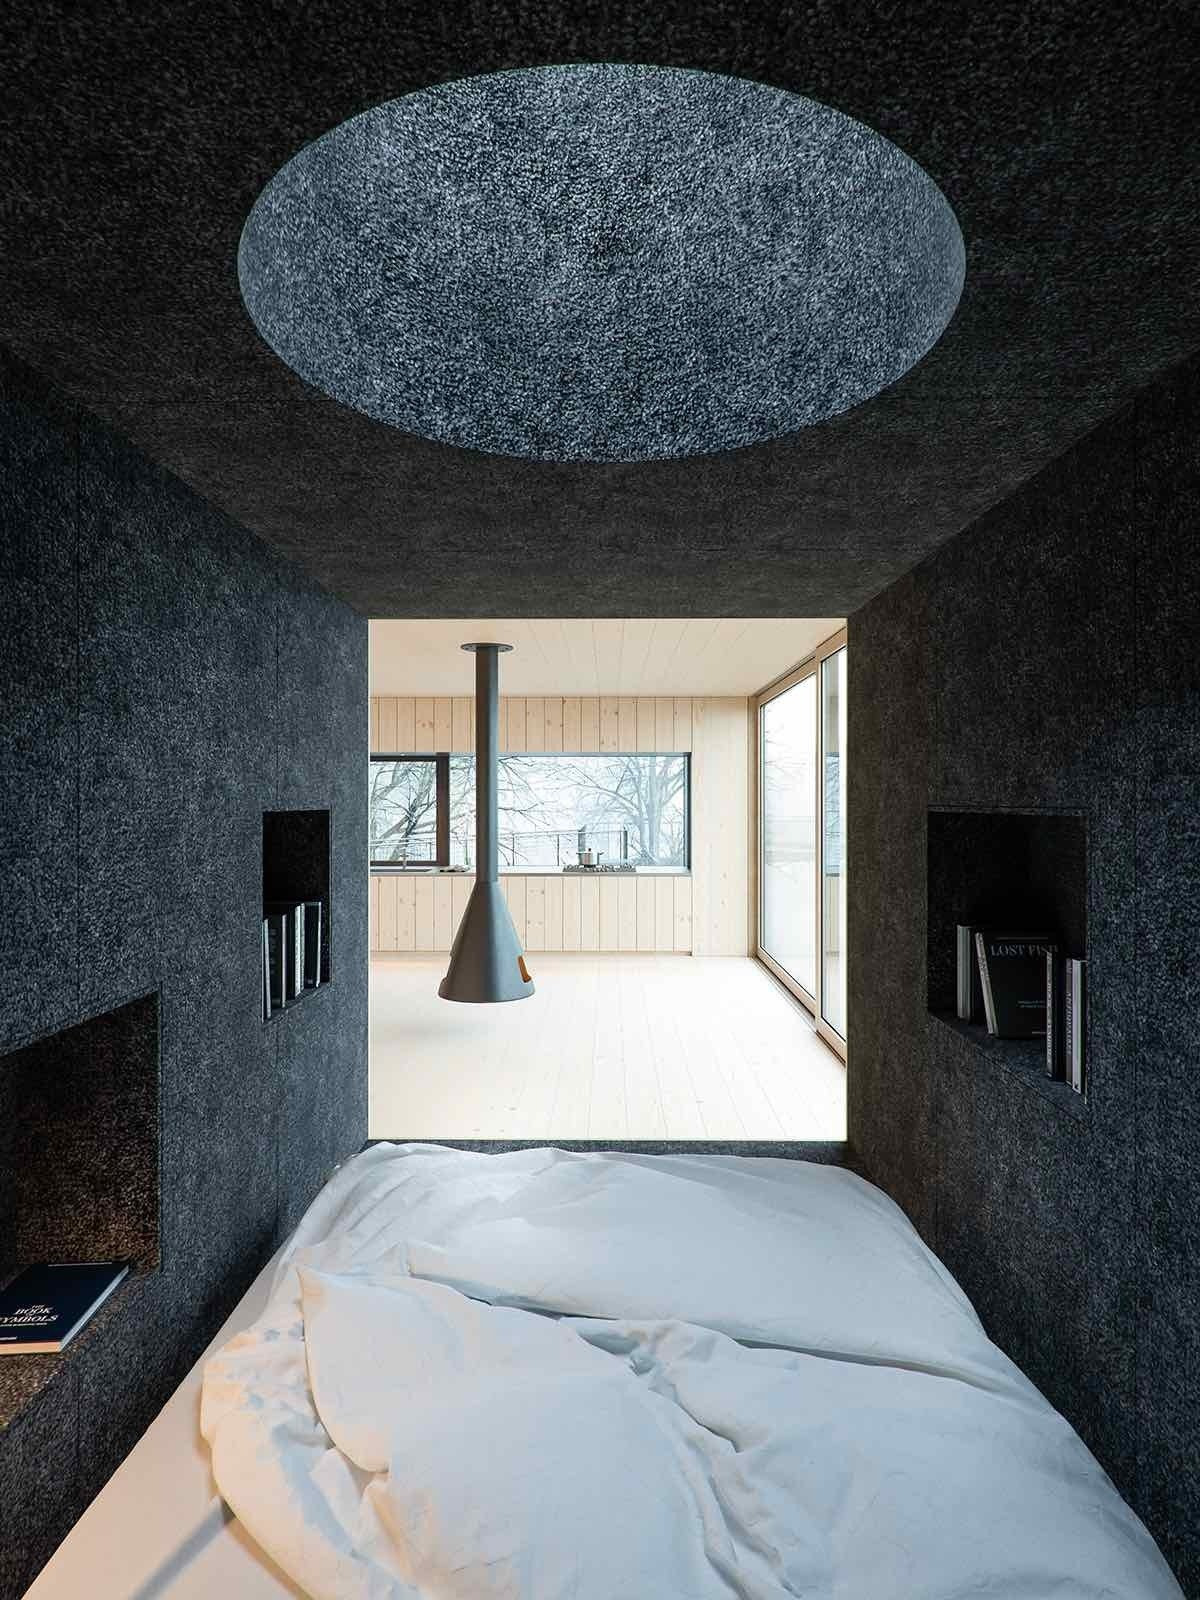 Photo 5 of 6 in Mask House by WOJR